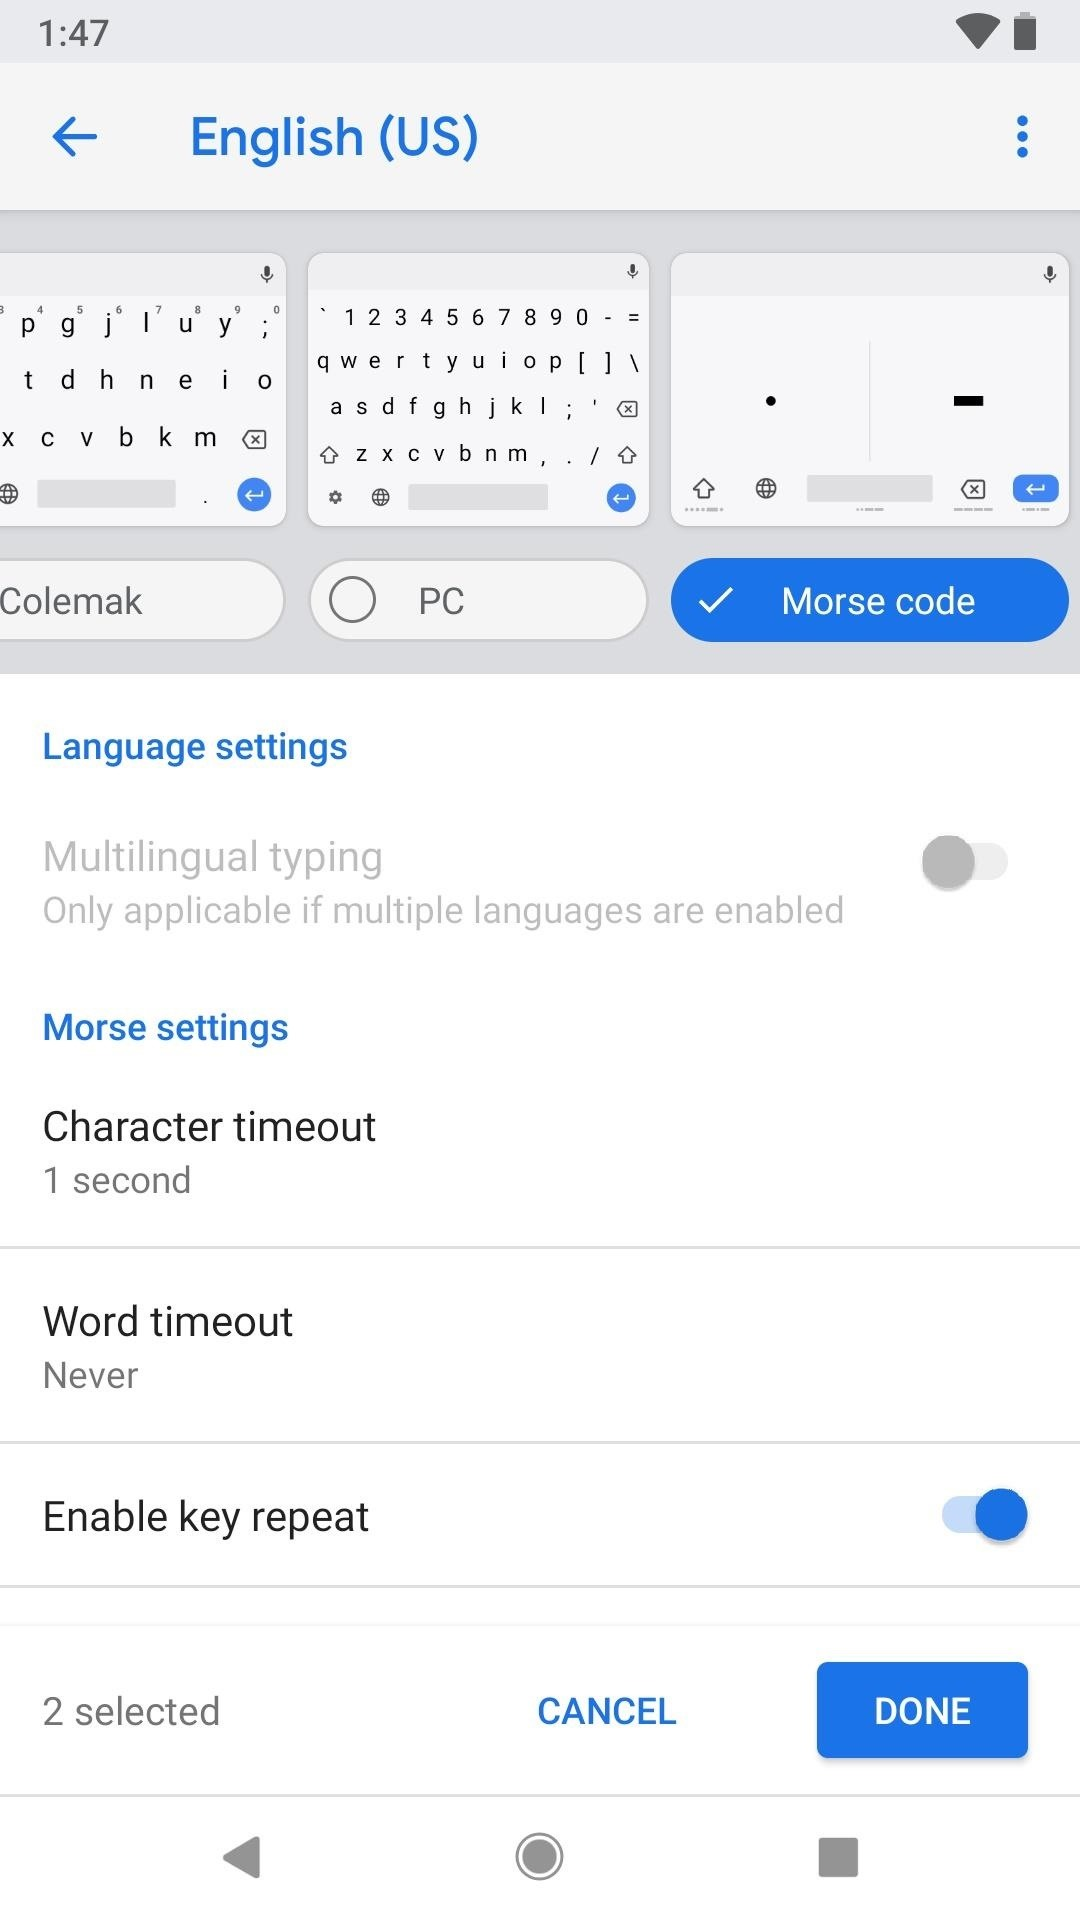 How to Unlock & Use the Morse Code Keyboard in Gboard on Your iPhone or Android Phone